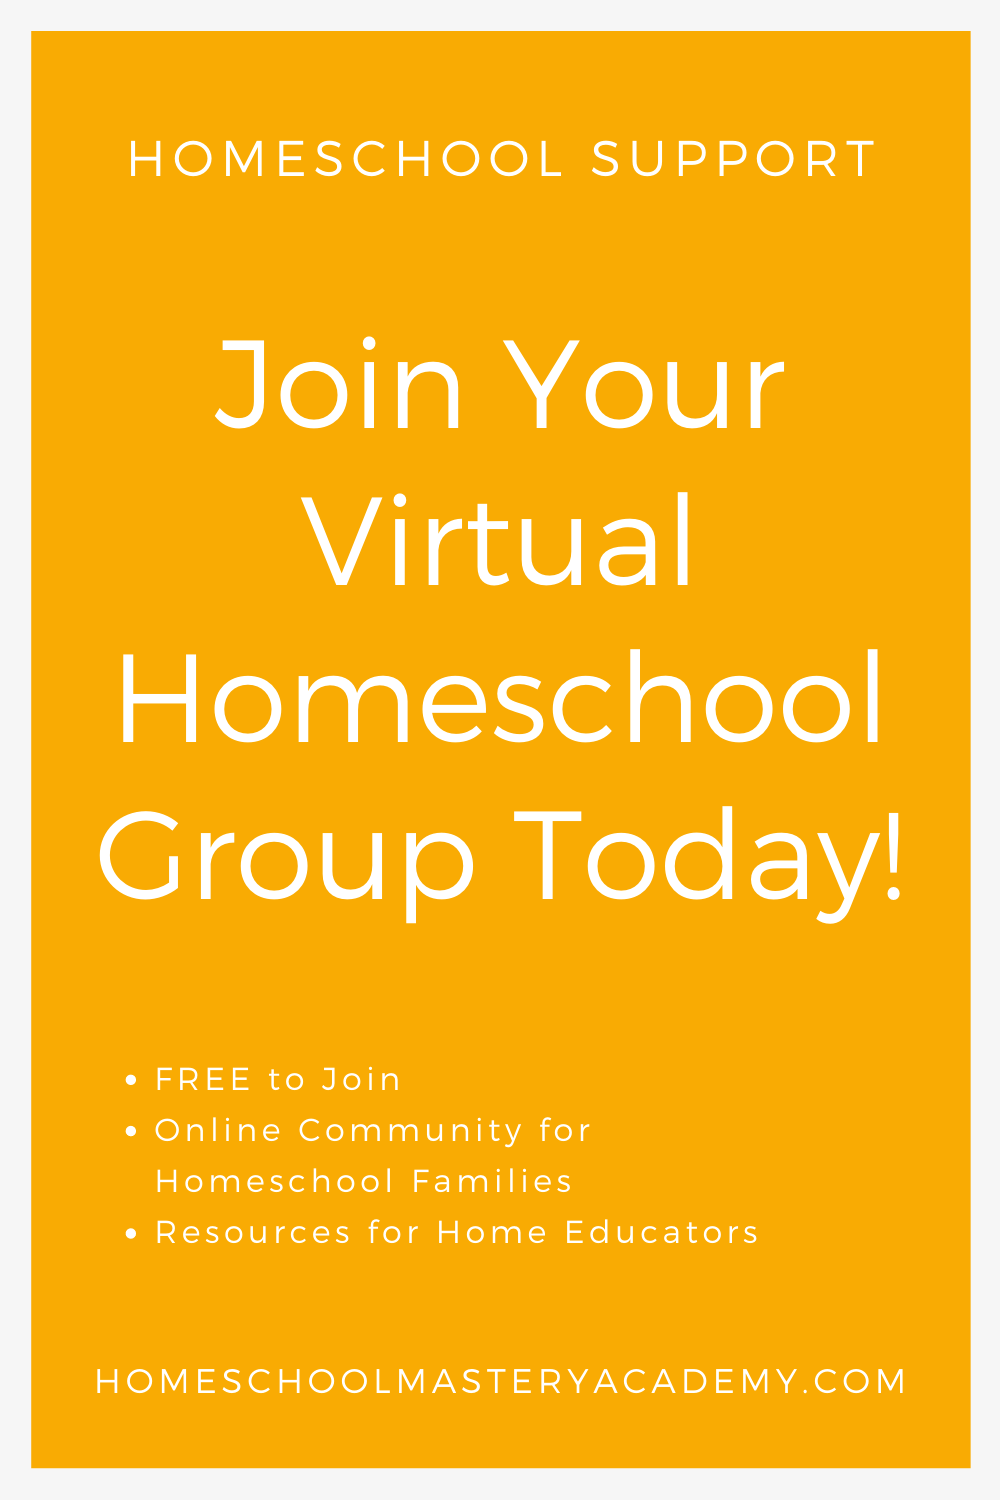 Your Virtual Homeschool Group is a FREE Online Homeschool Group Specifically for Homeschool Families Seeking Support and Home Education Resources. #homeschoolsupport #homeschoolcommunity #homeschoolhelp #homeschoolers